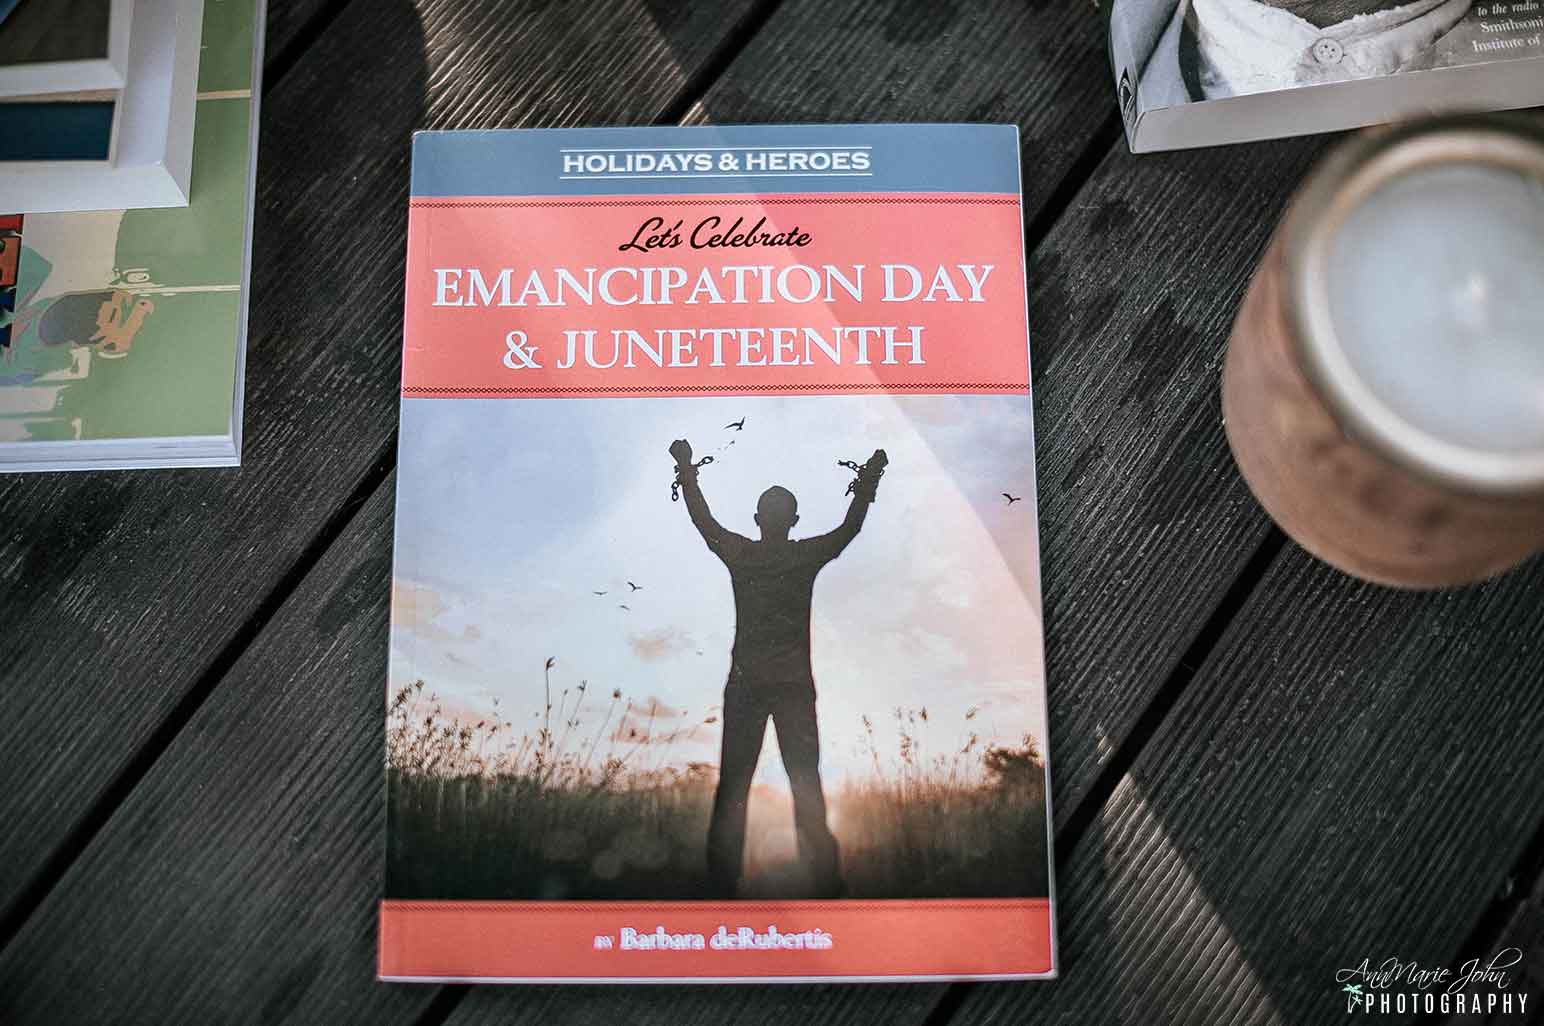 Juneteenth Books - Let's Celebrate Emancipation Day & Juneteenth (Holidays & Heroes)